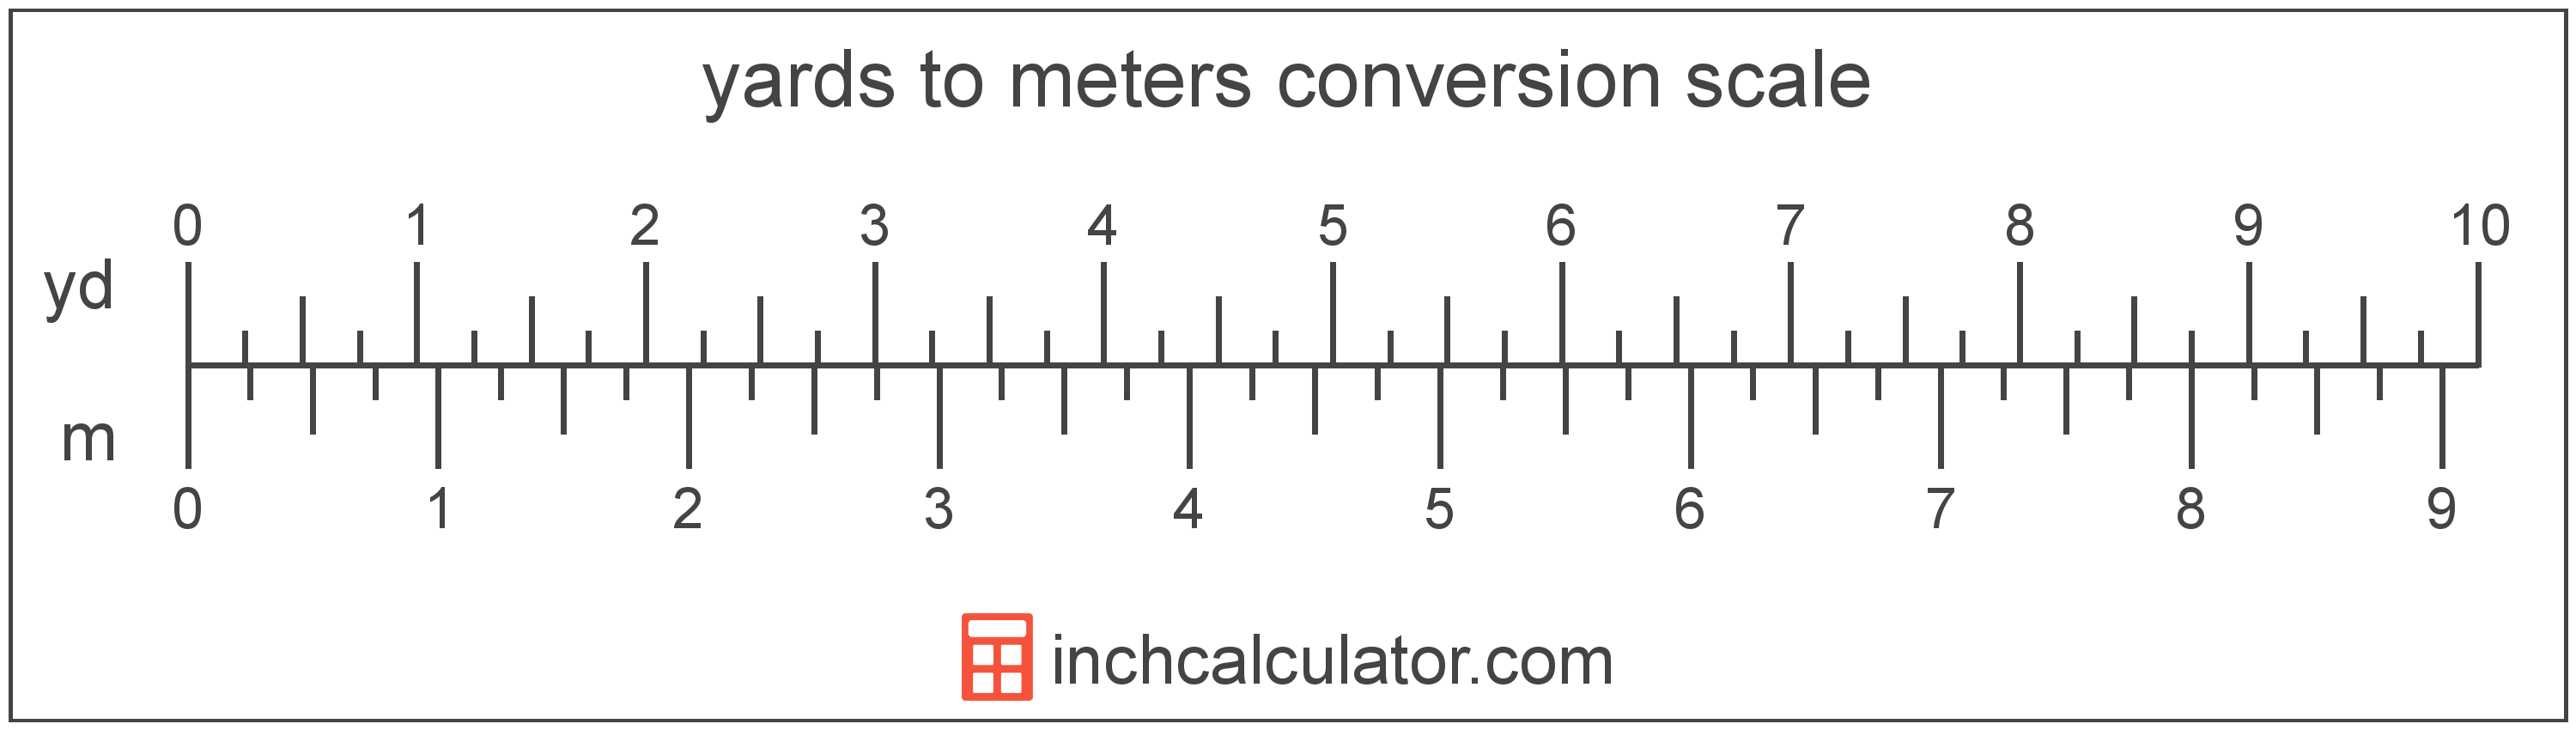 Convert Yards To Meters Length